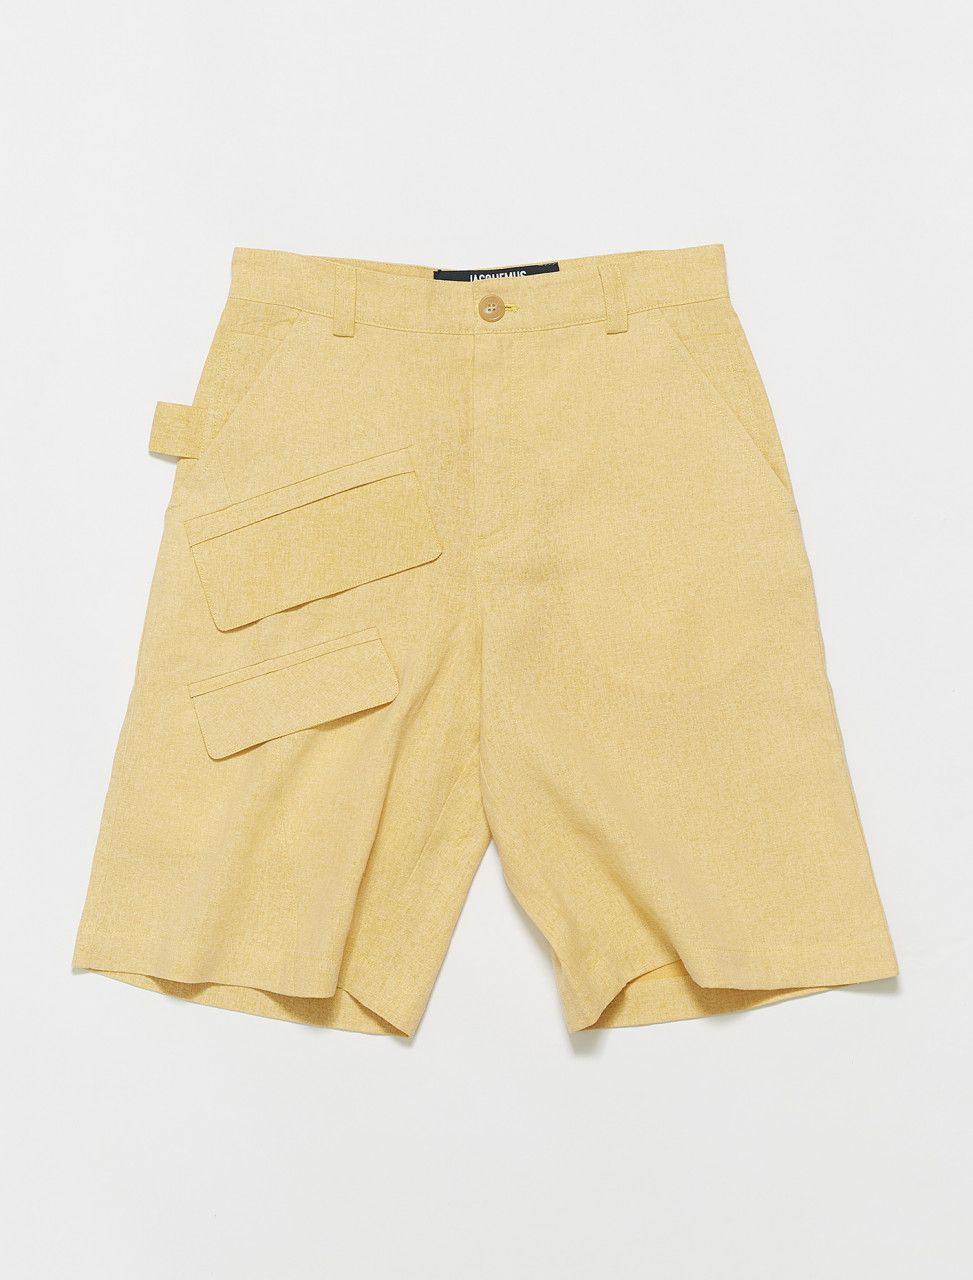 215PA10-215-104230 JACQUEMUS LE SHORT COLZA YELLOW